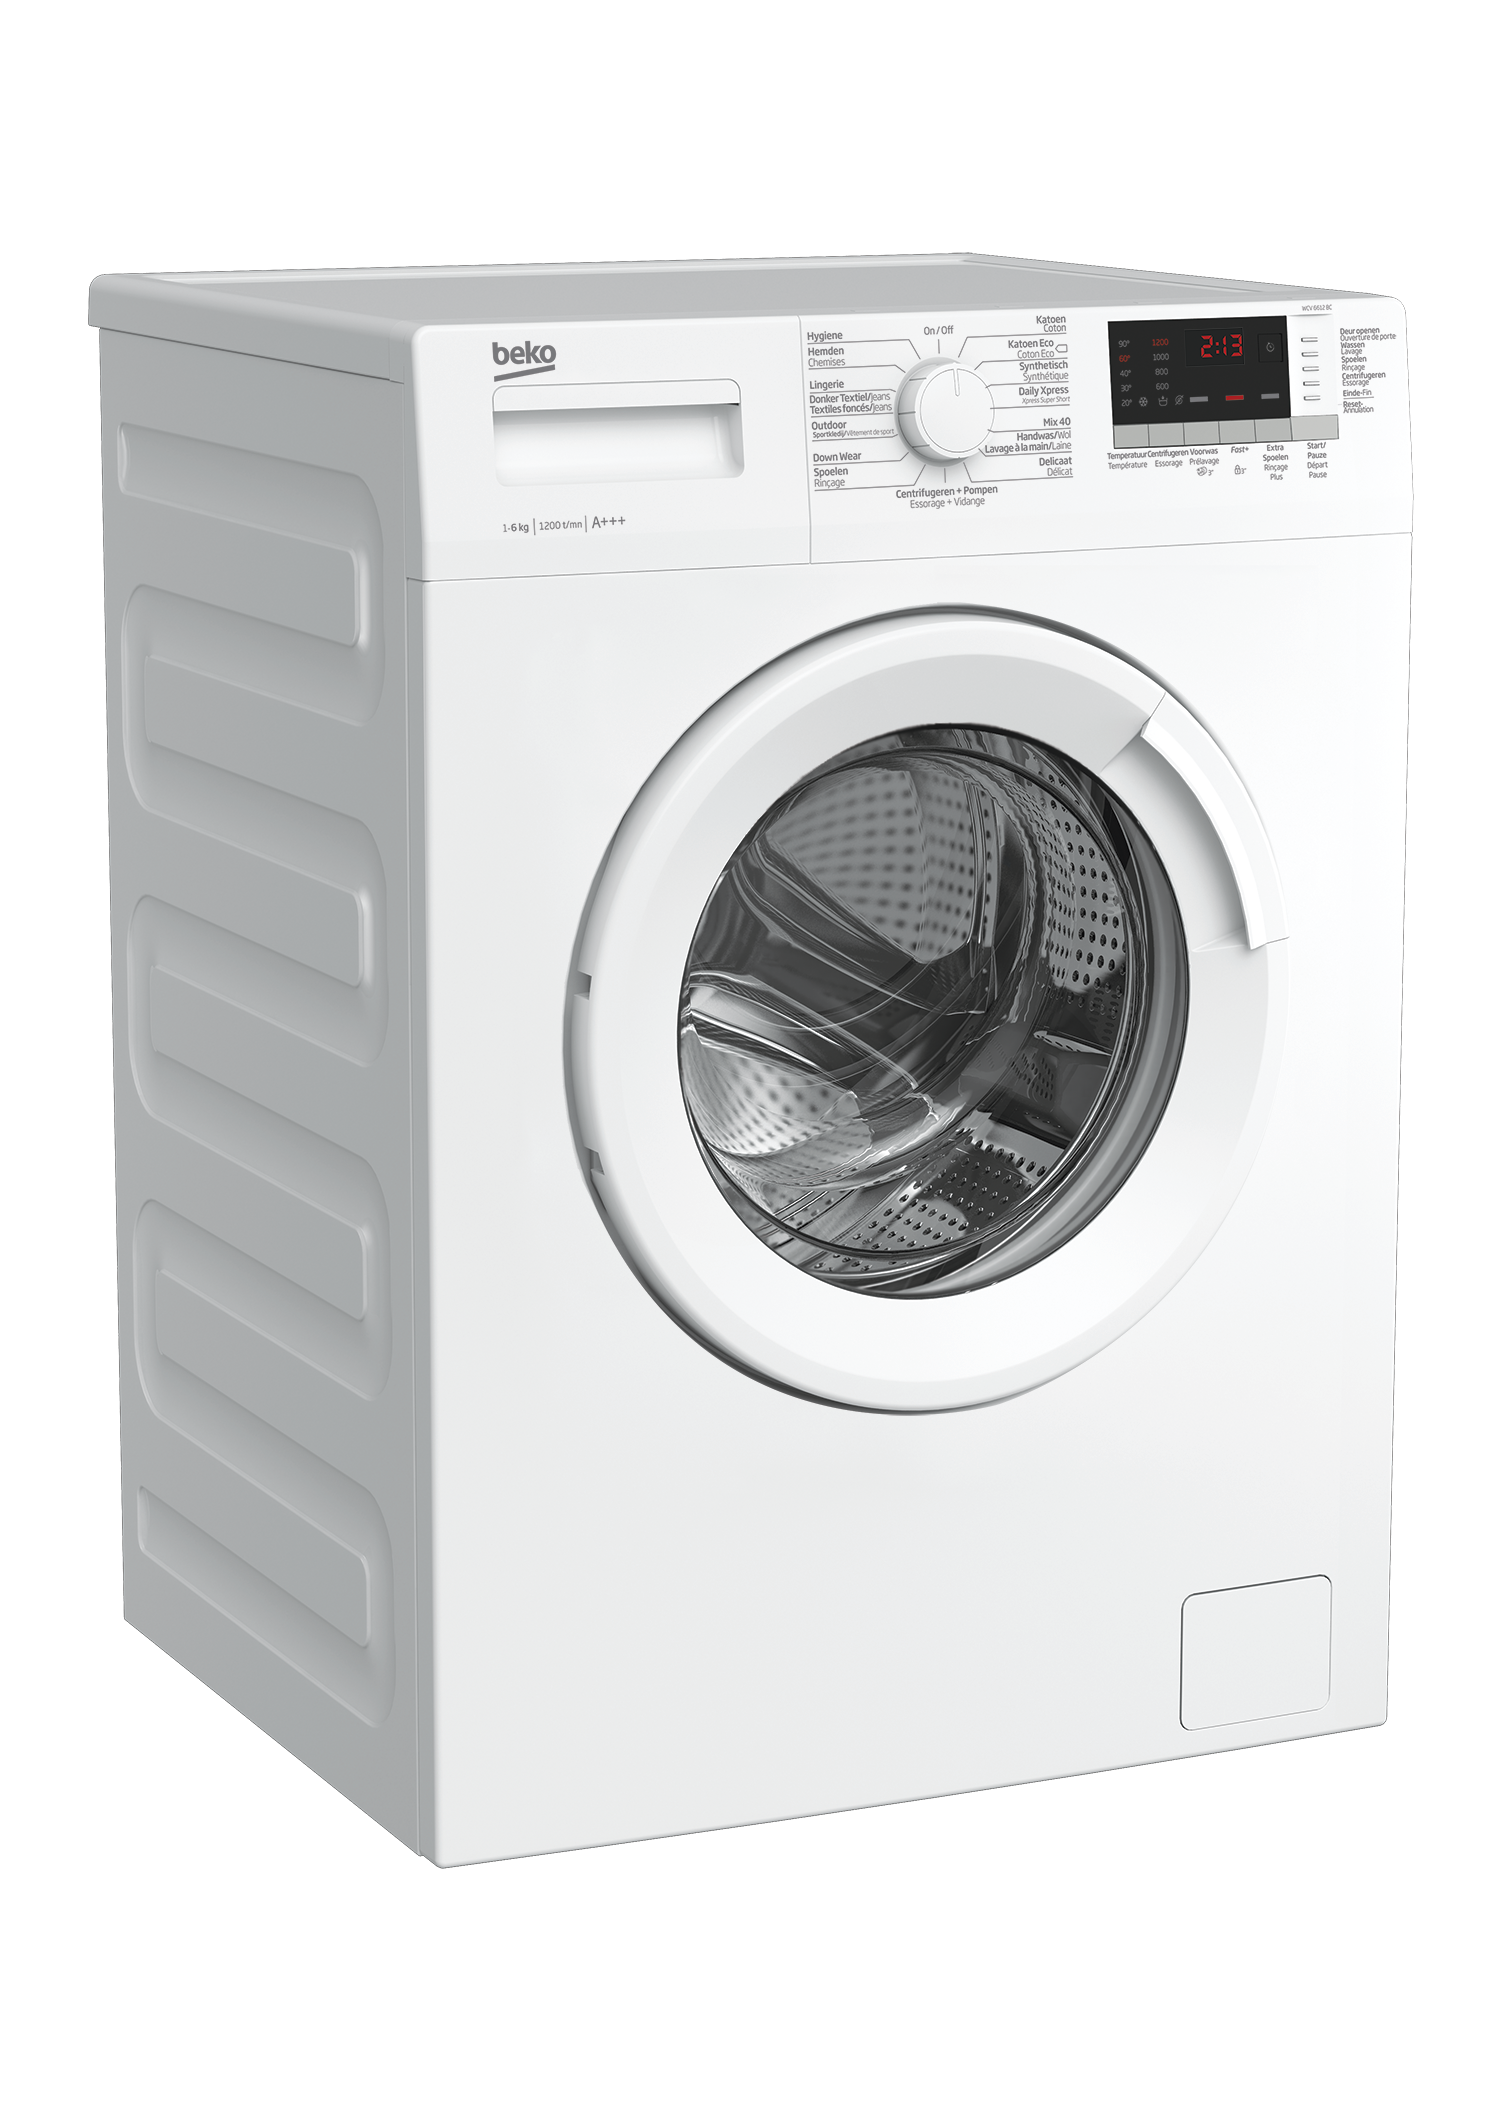 Freestanding Washing Machine (6 kg, 1200 rpm) WCV 6612 BC